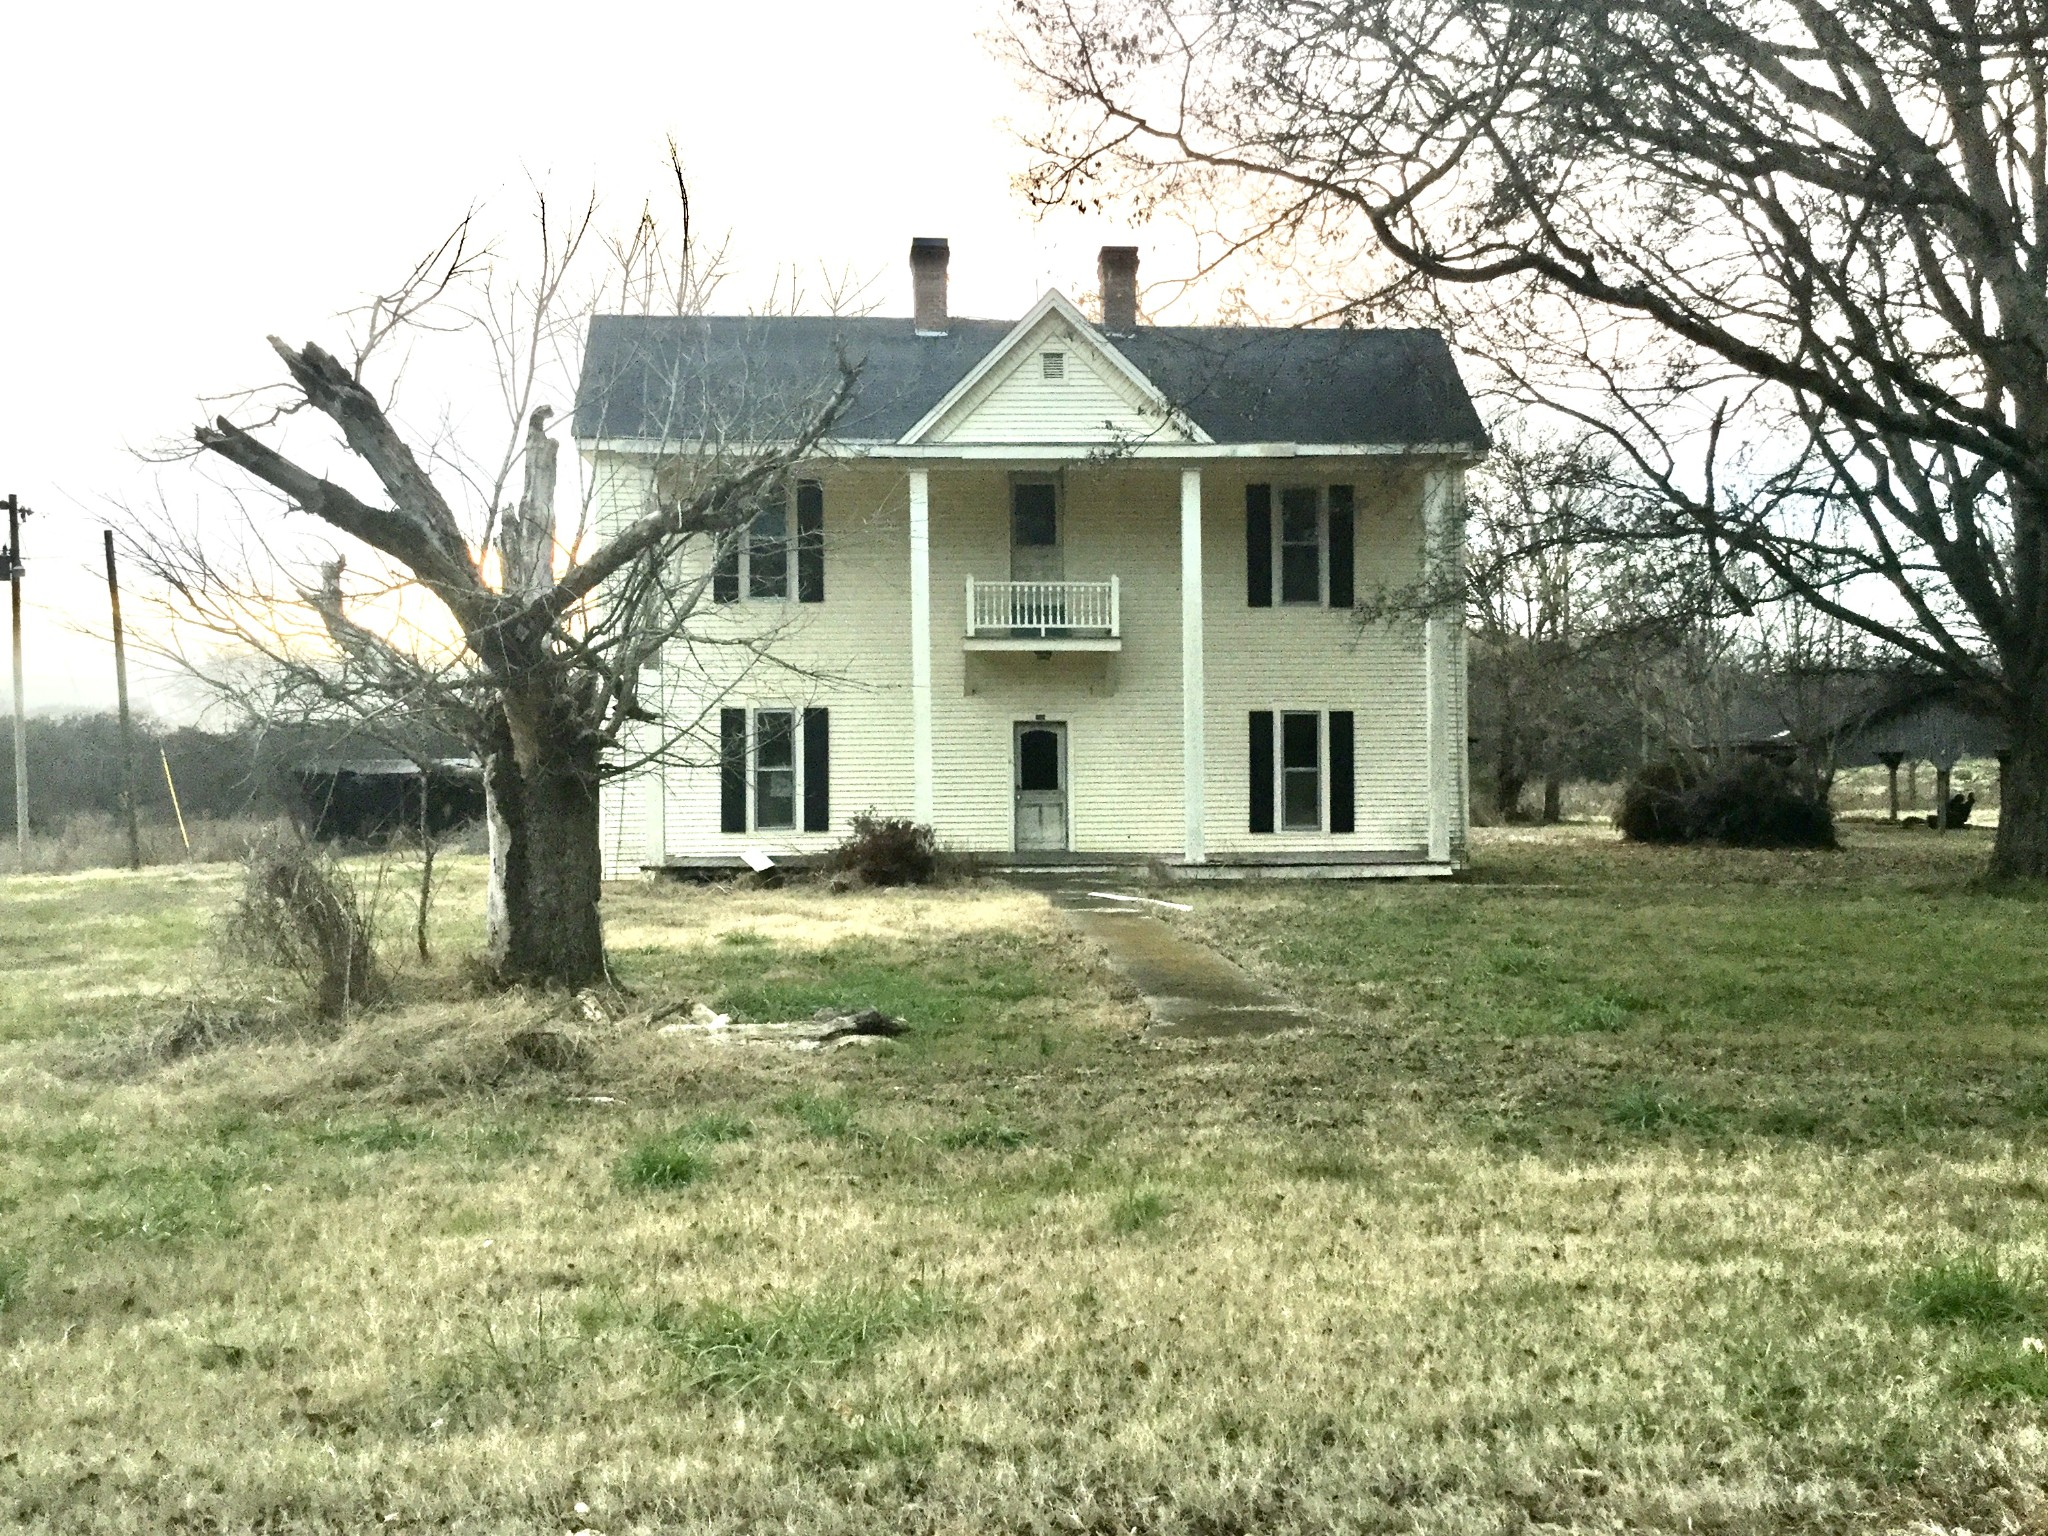 1606 Richardson Rd, Lewisburg, TN 37091 - Lewisburg, TN real estate listing